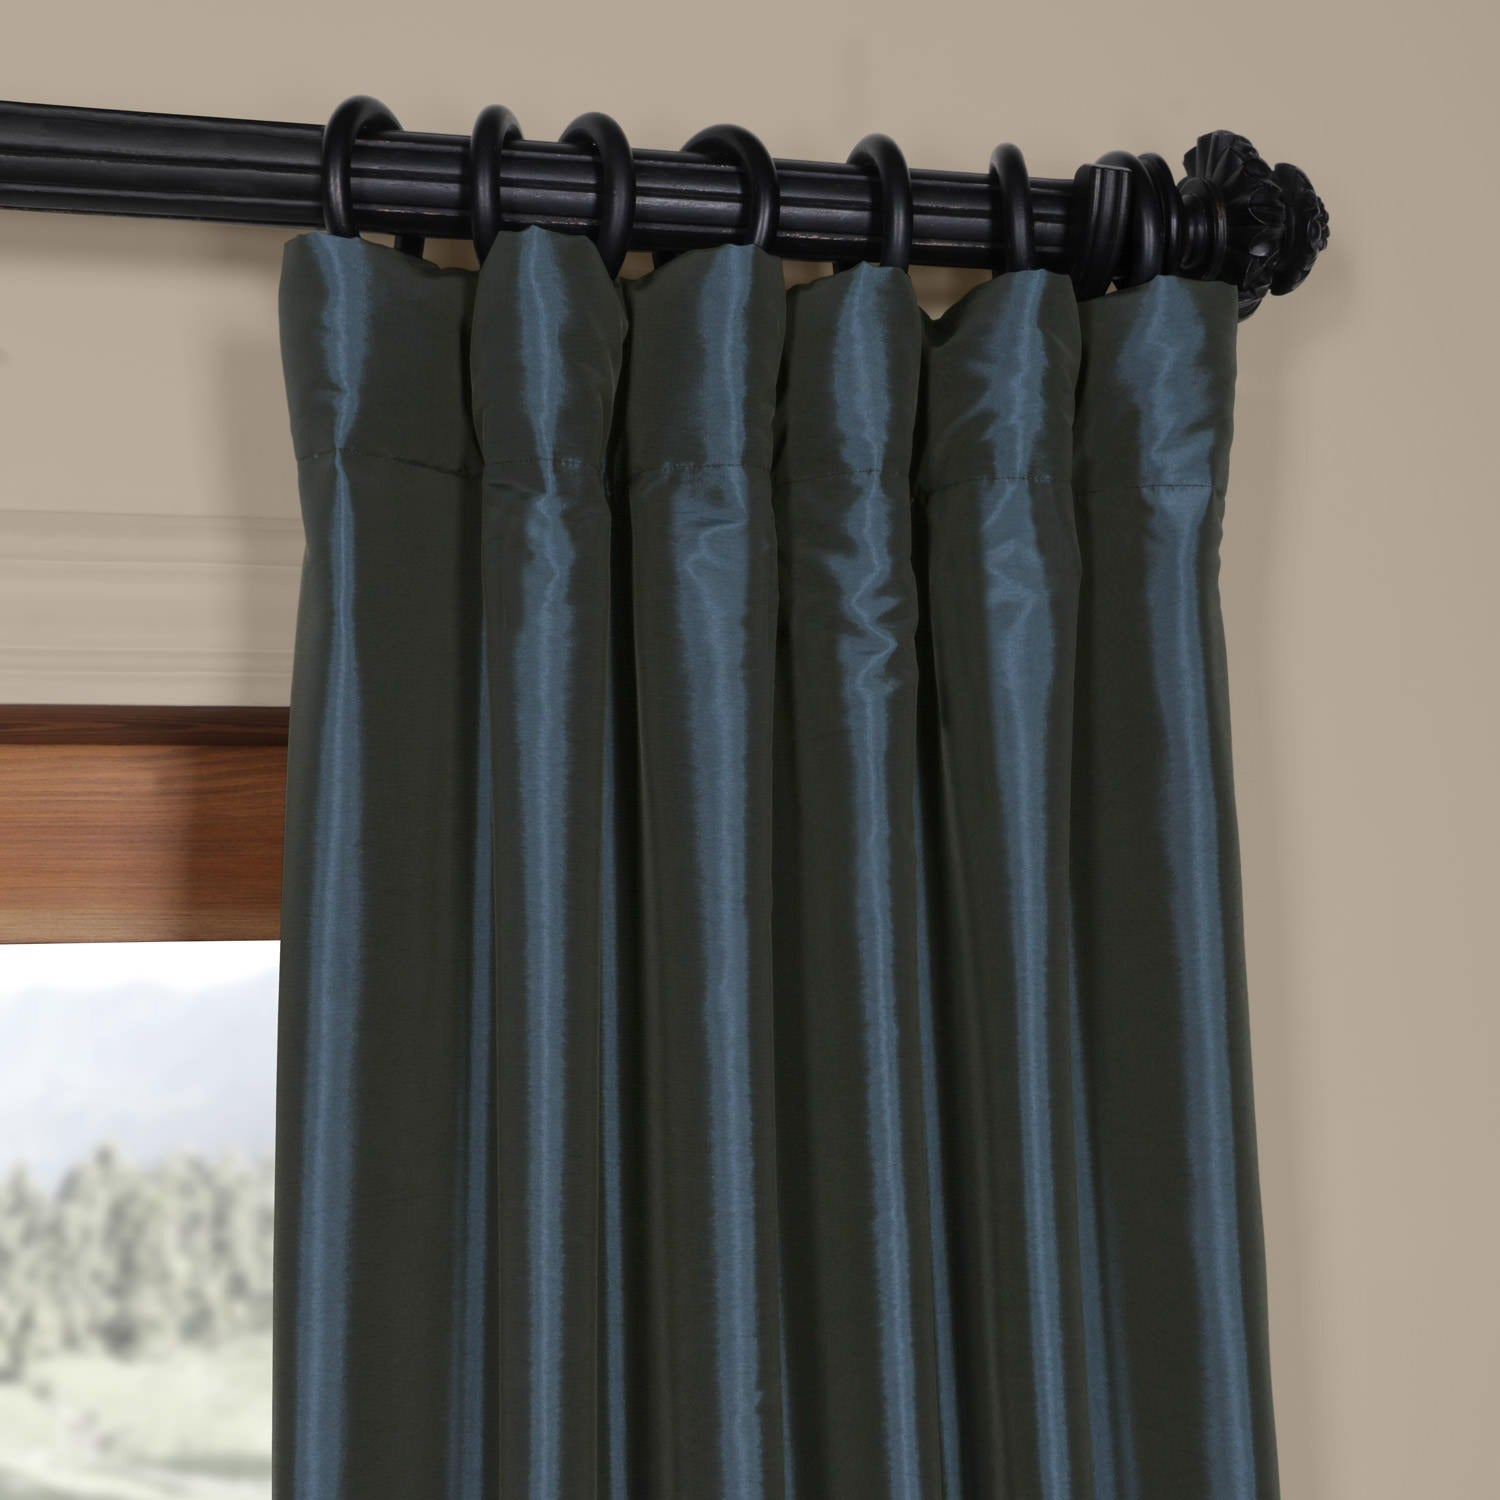 Shop Exclusive Fabrics Solid Faux Silk Taffeta Navy Blue Curtain Panel